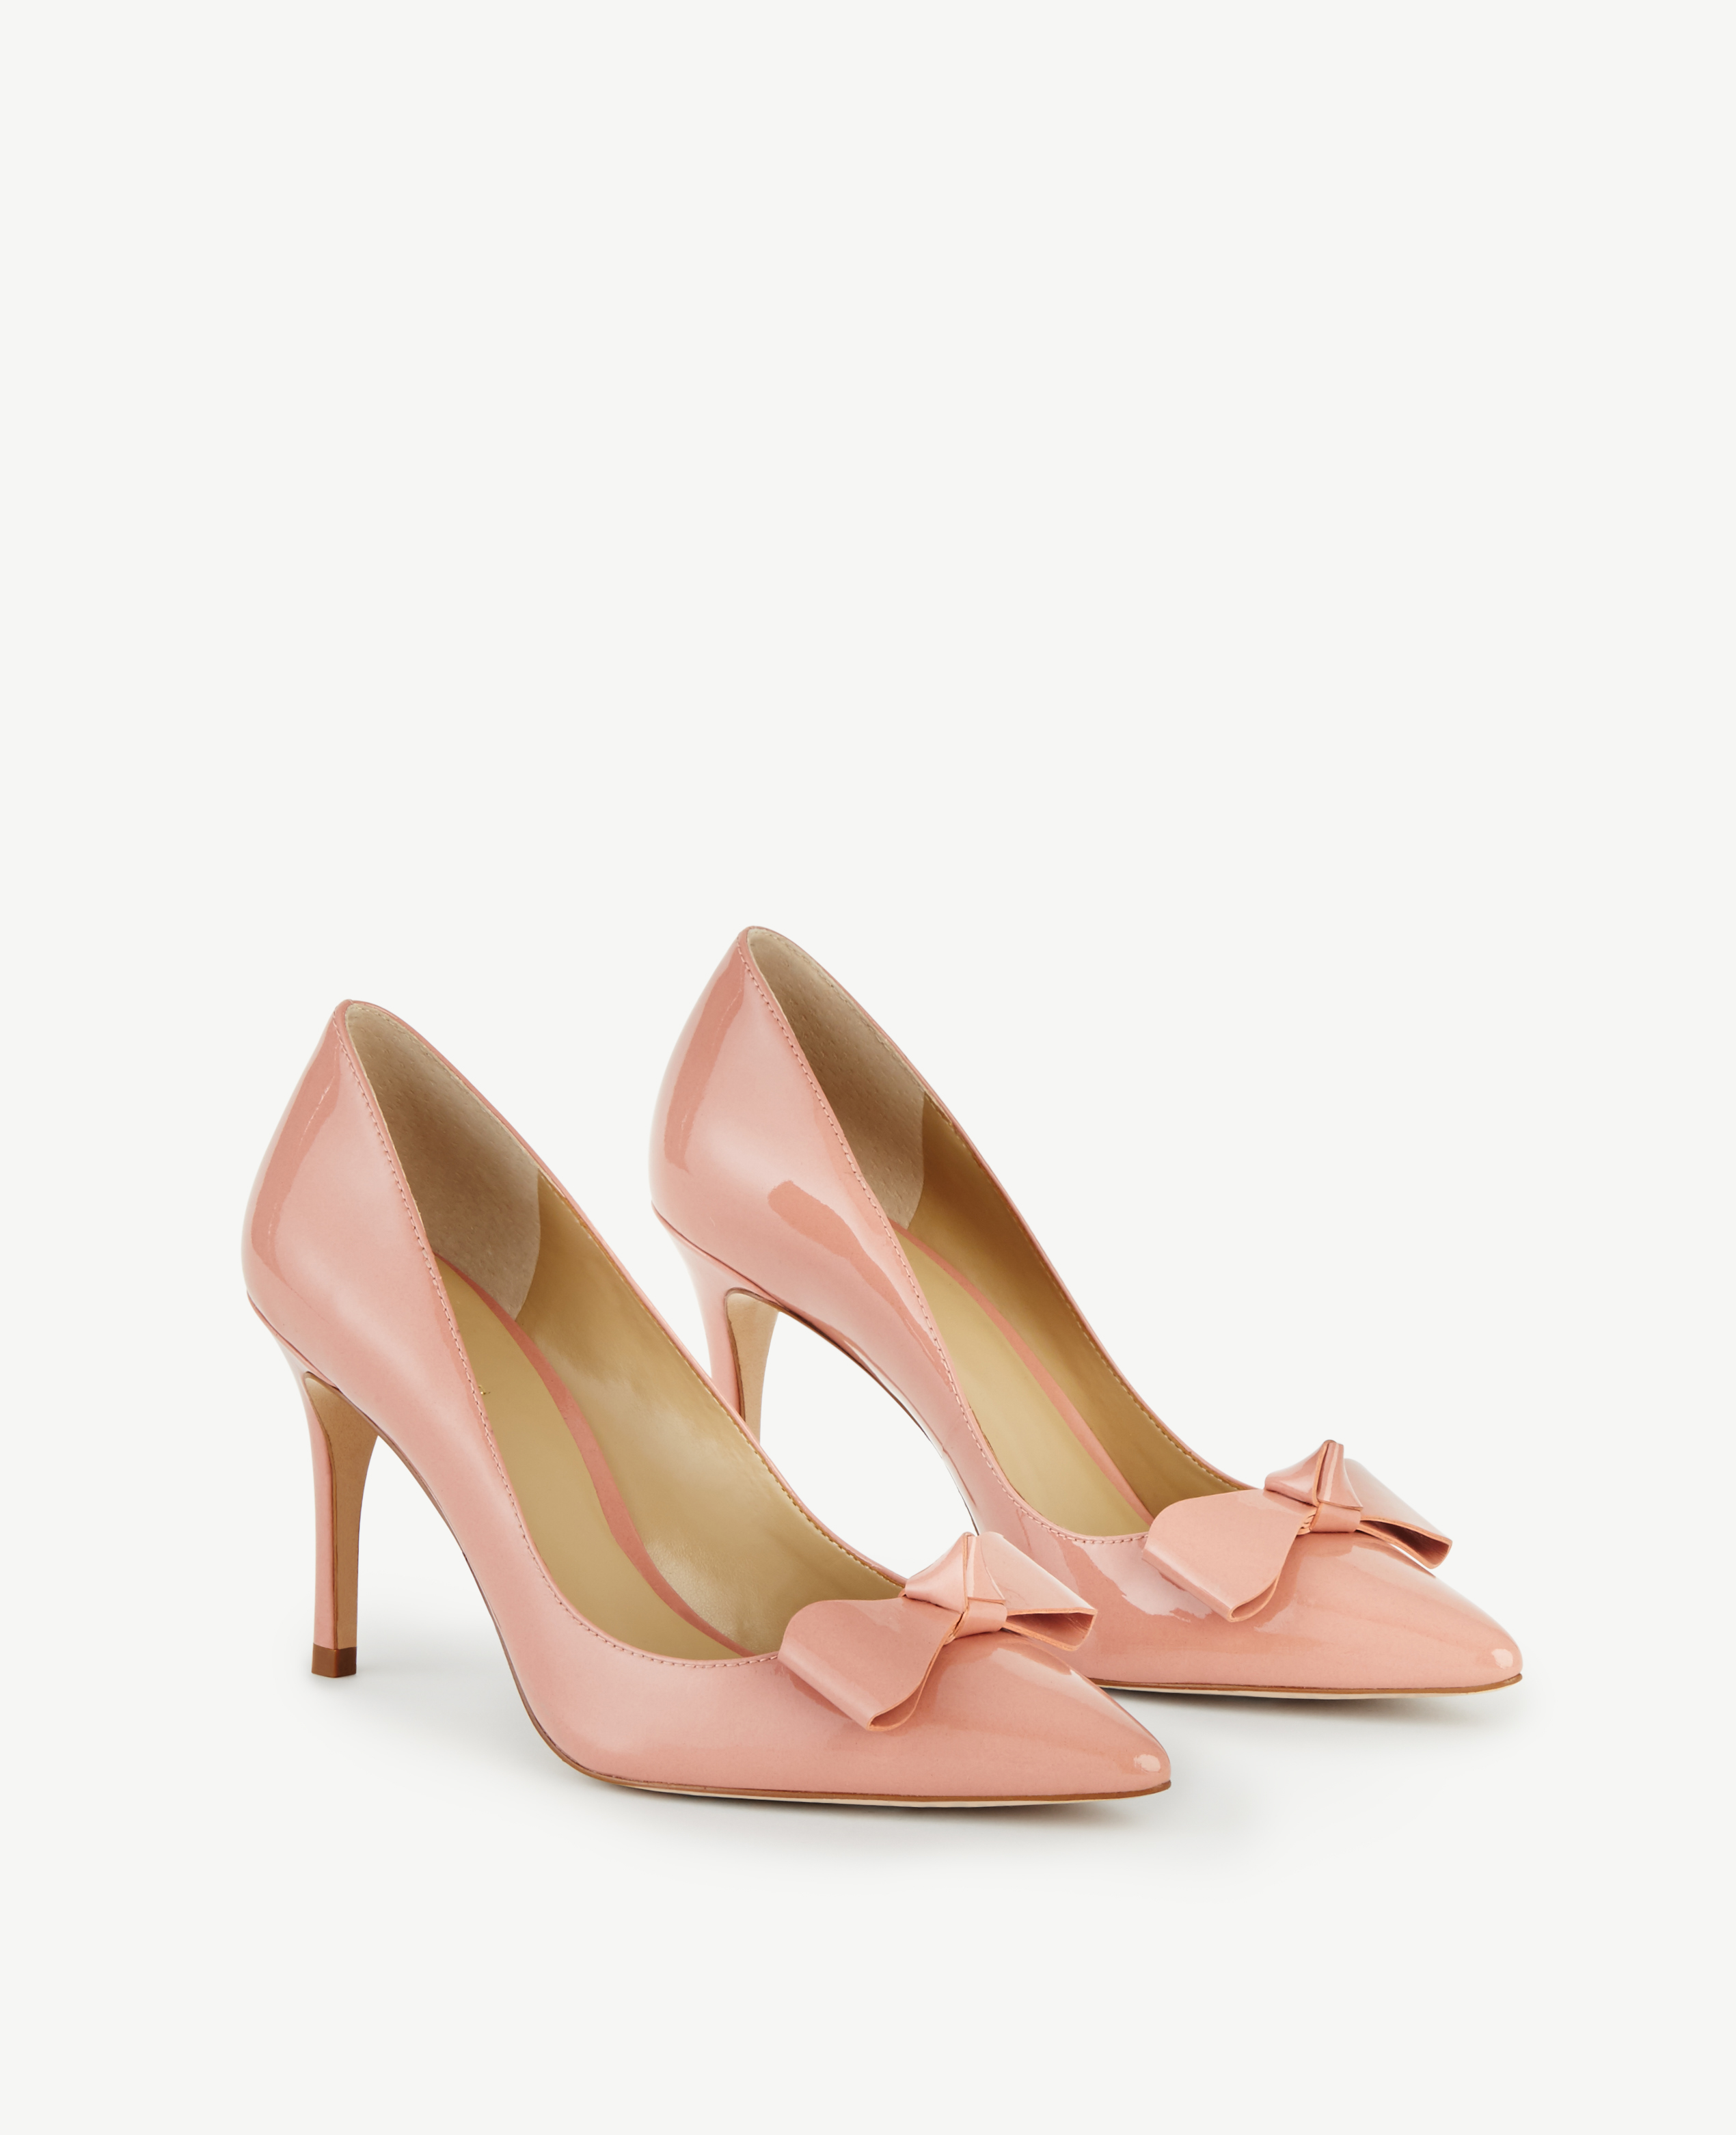 d5bc67a4195 Lyst - Ann Taylor Charlie Patent Bow Pumps in Pink